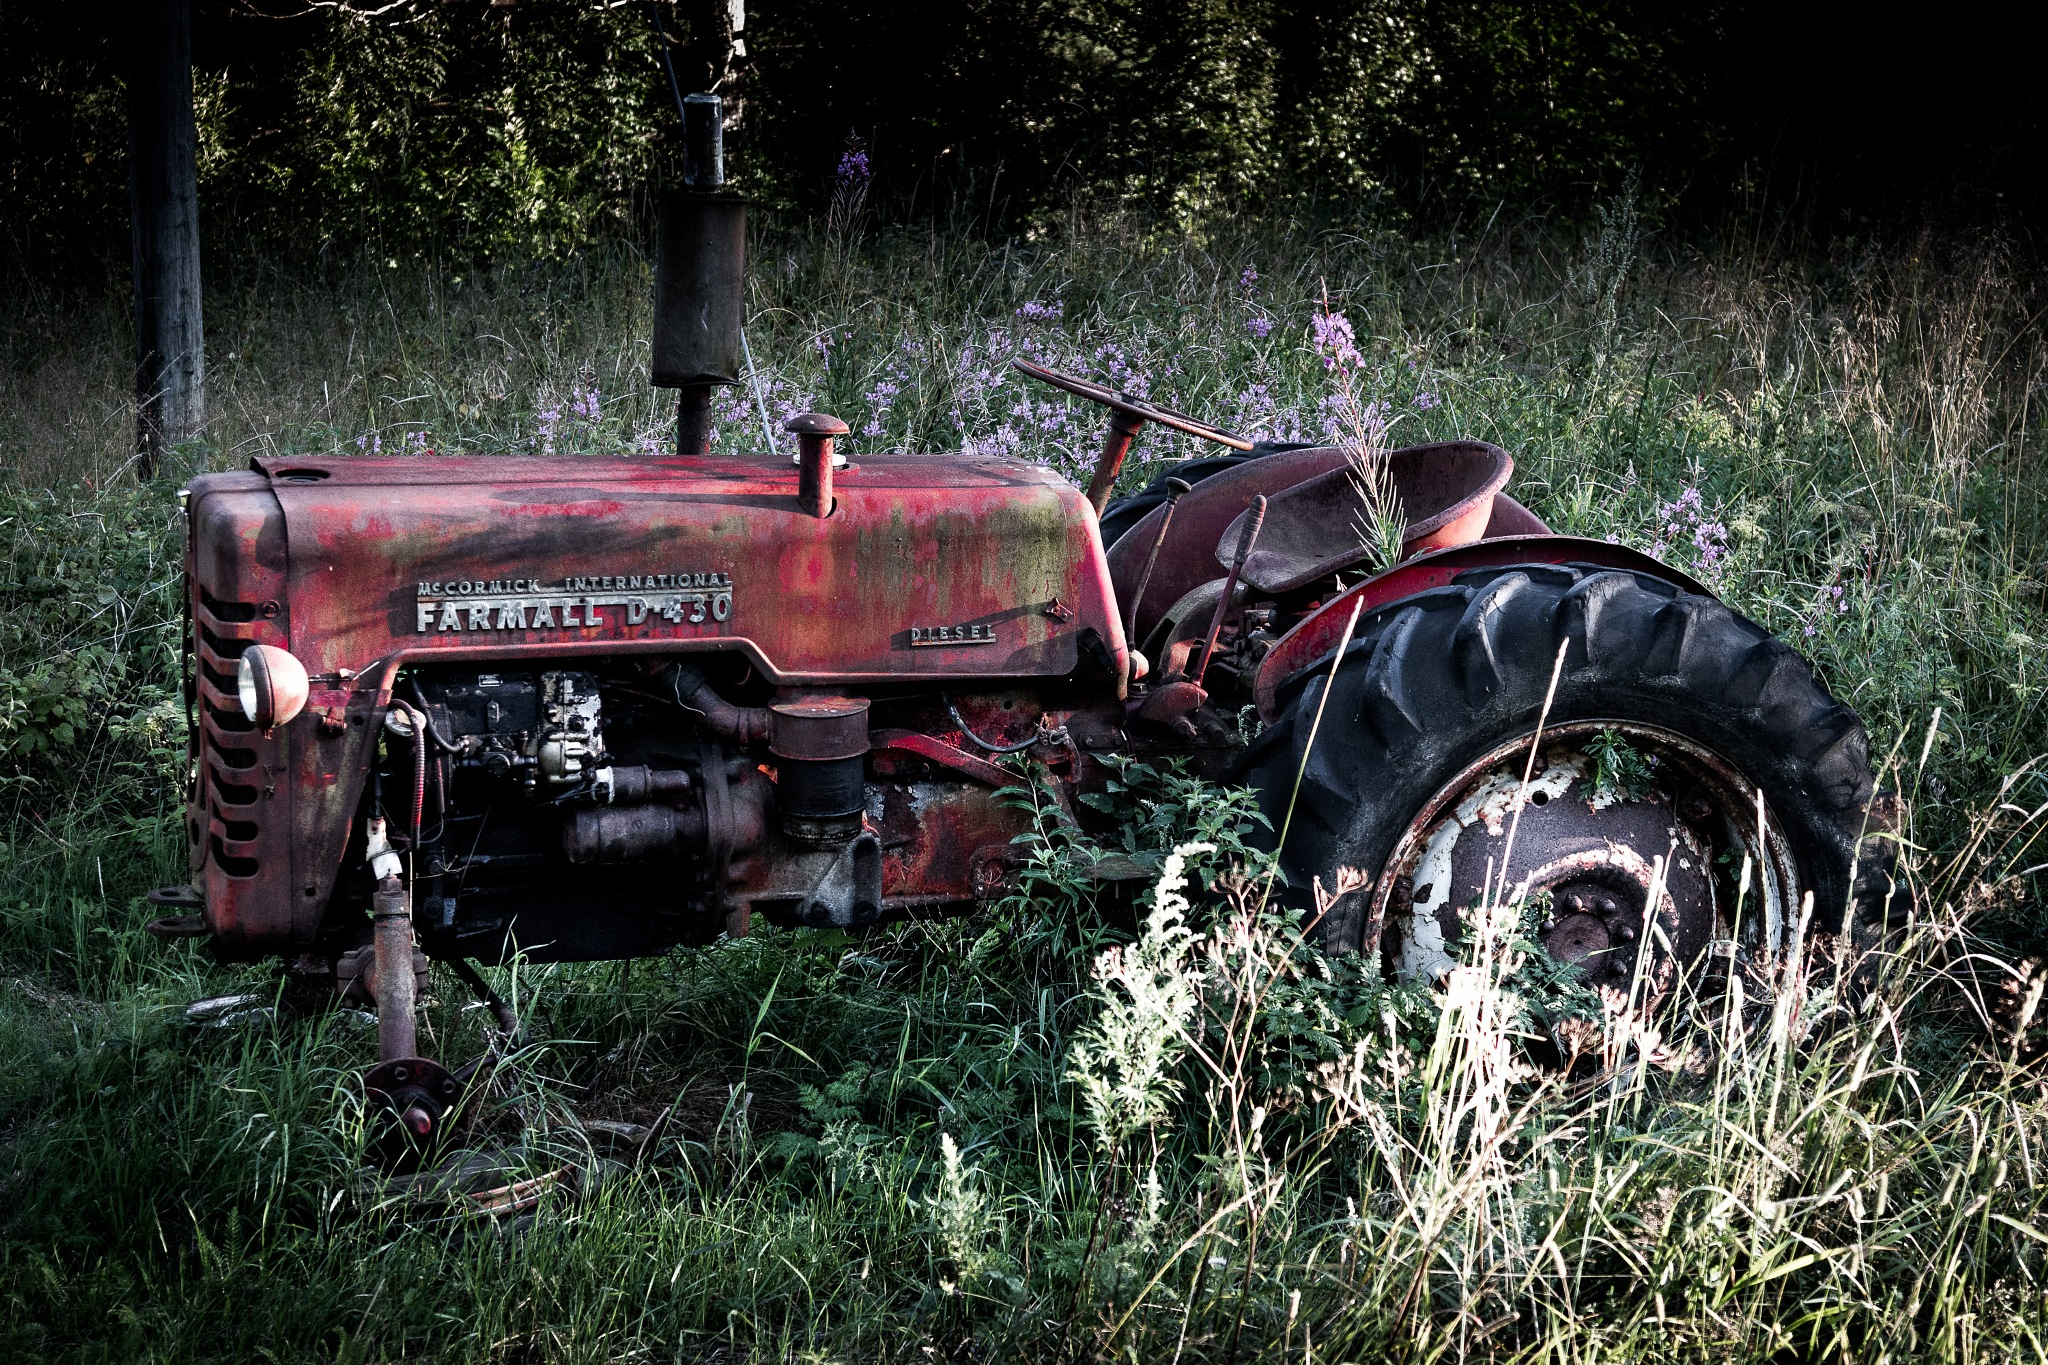 Farmall D430 by Jens-Chr.